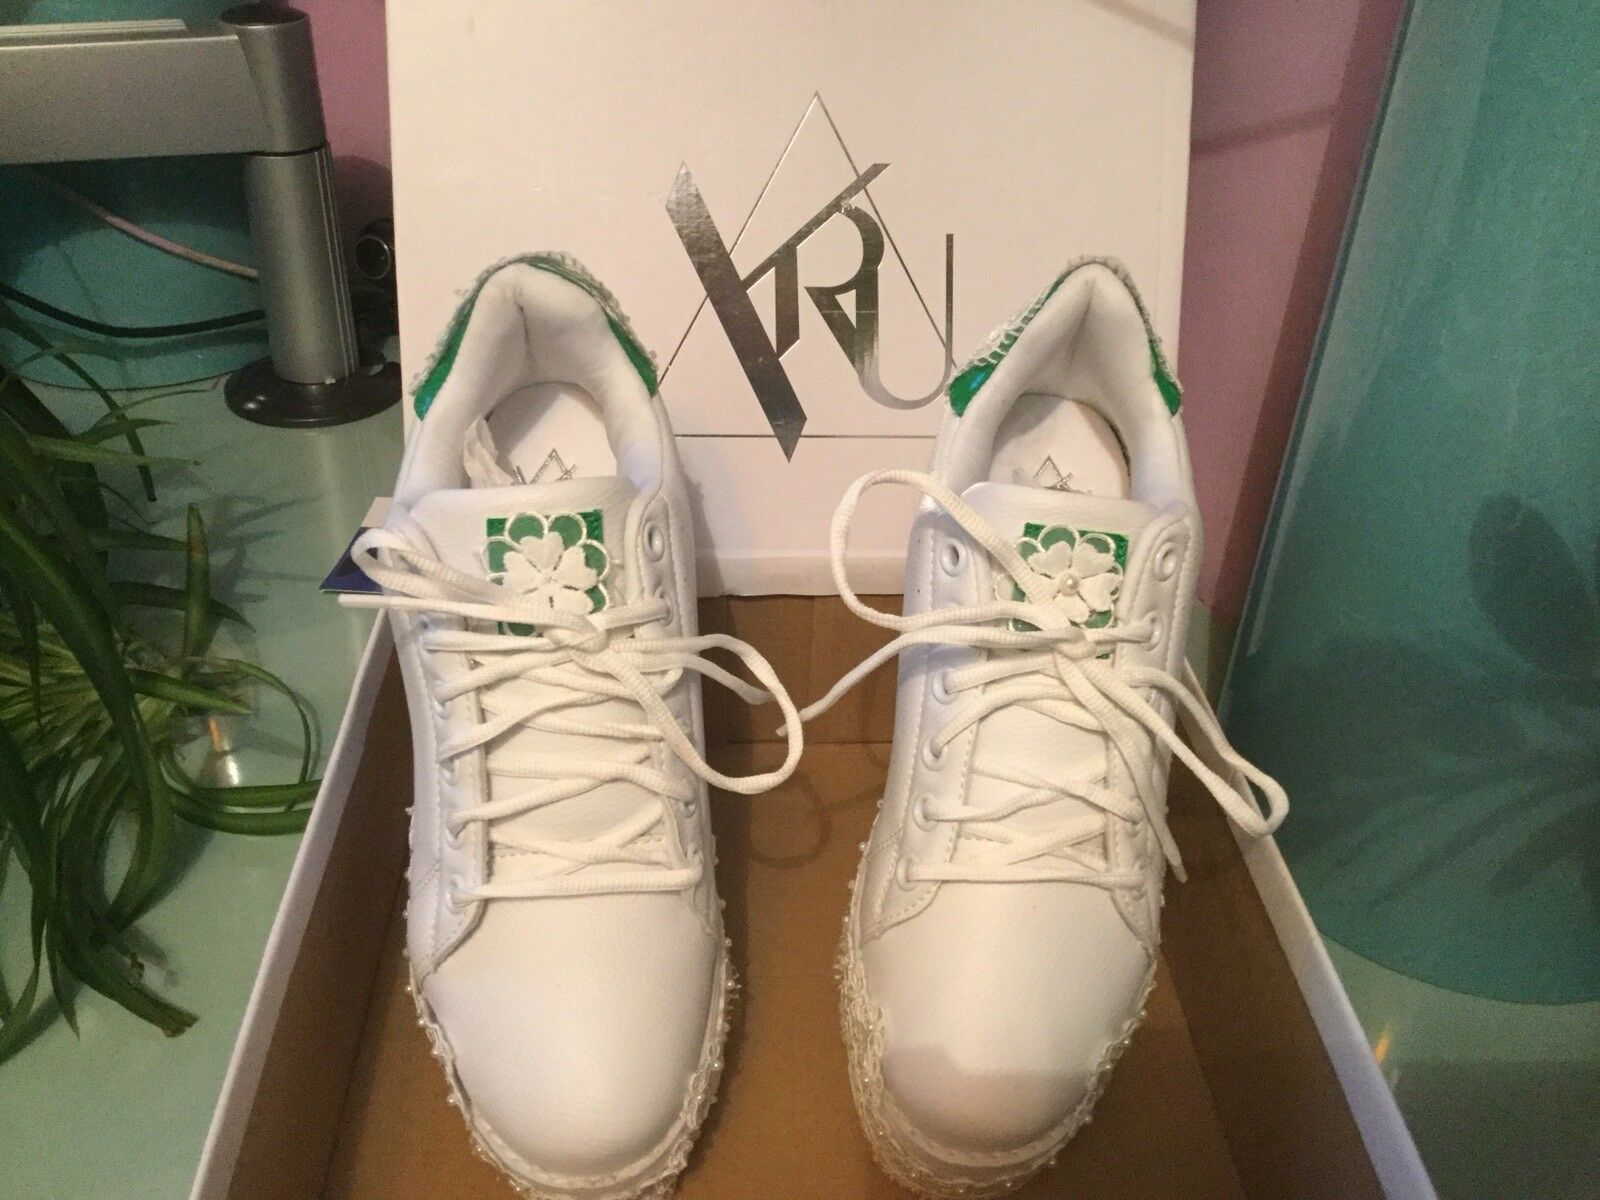 BRAND NEW sneakers,Taille9/40,lace-up,3inch Beautiful wedding chaussures sneakers,Taille9/40,lace-up,3inch NEW heel. 0b8c3a